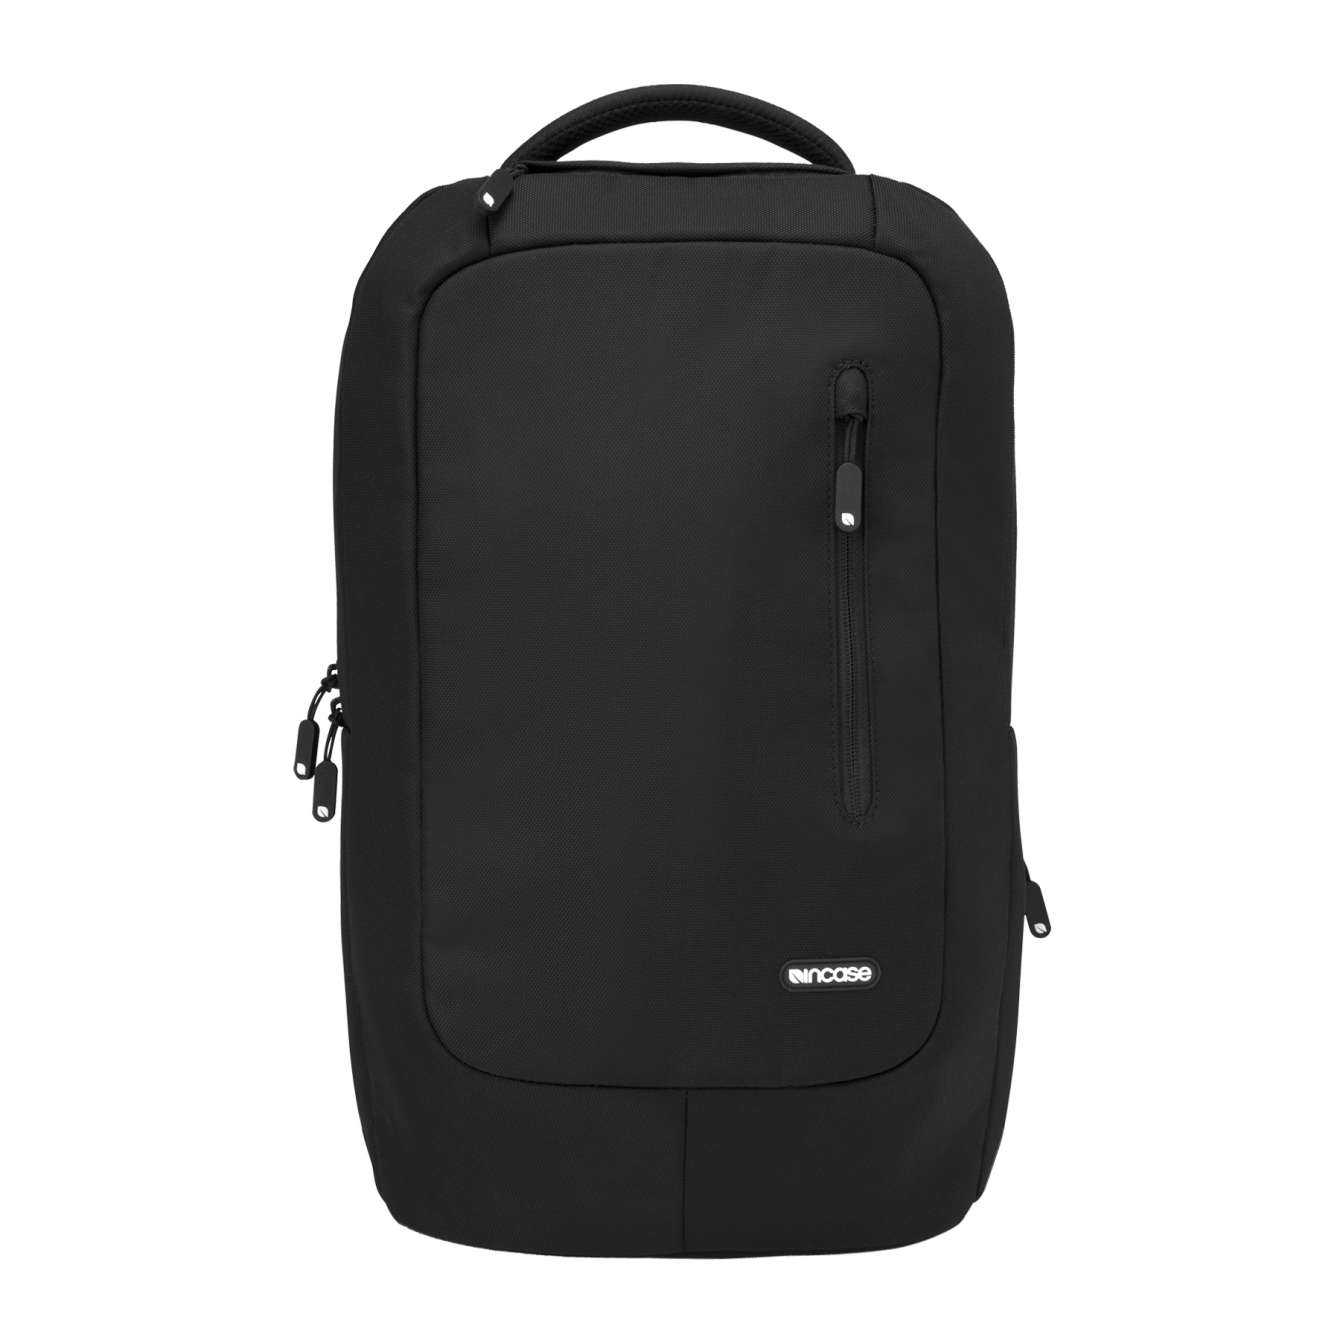 INCASE Compact Backpack for macbook pro 15 กระเป๋า INCASE สีดำ